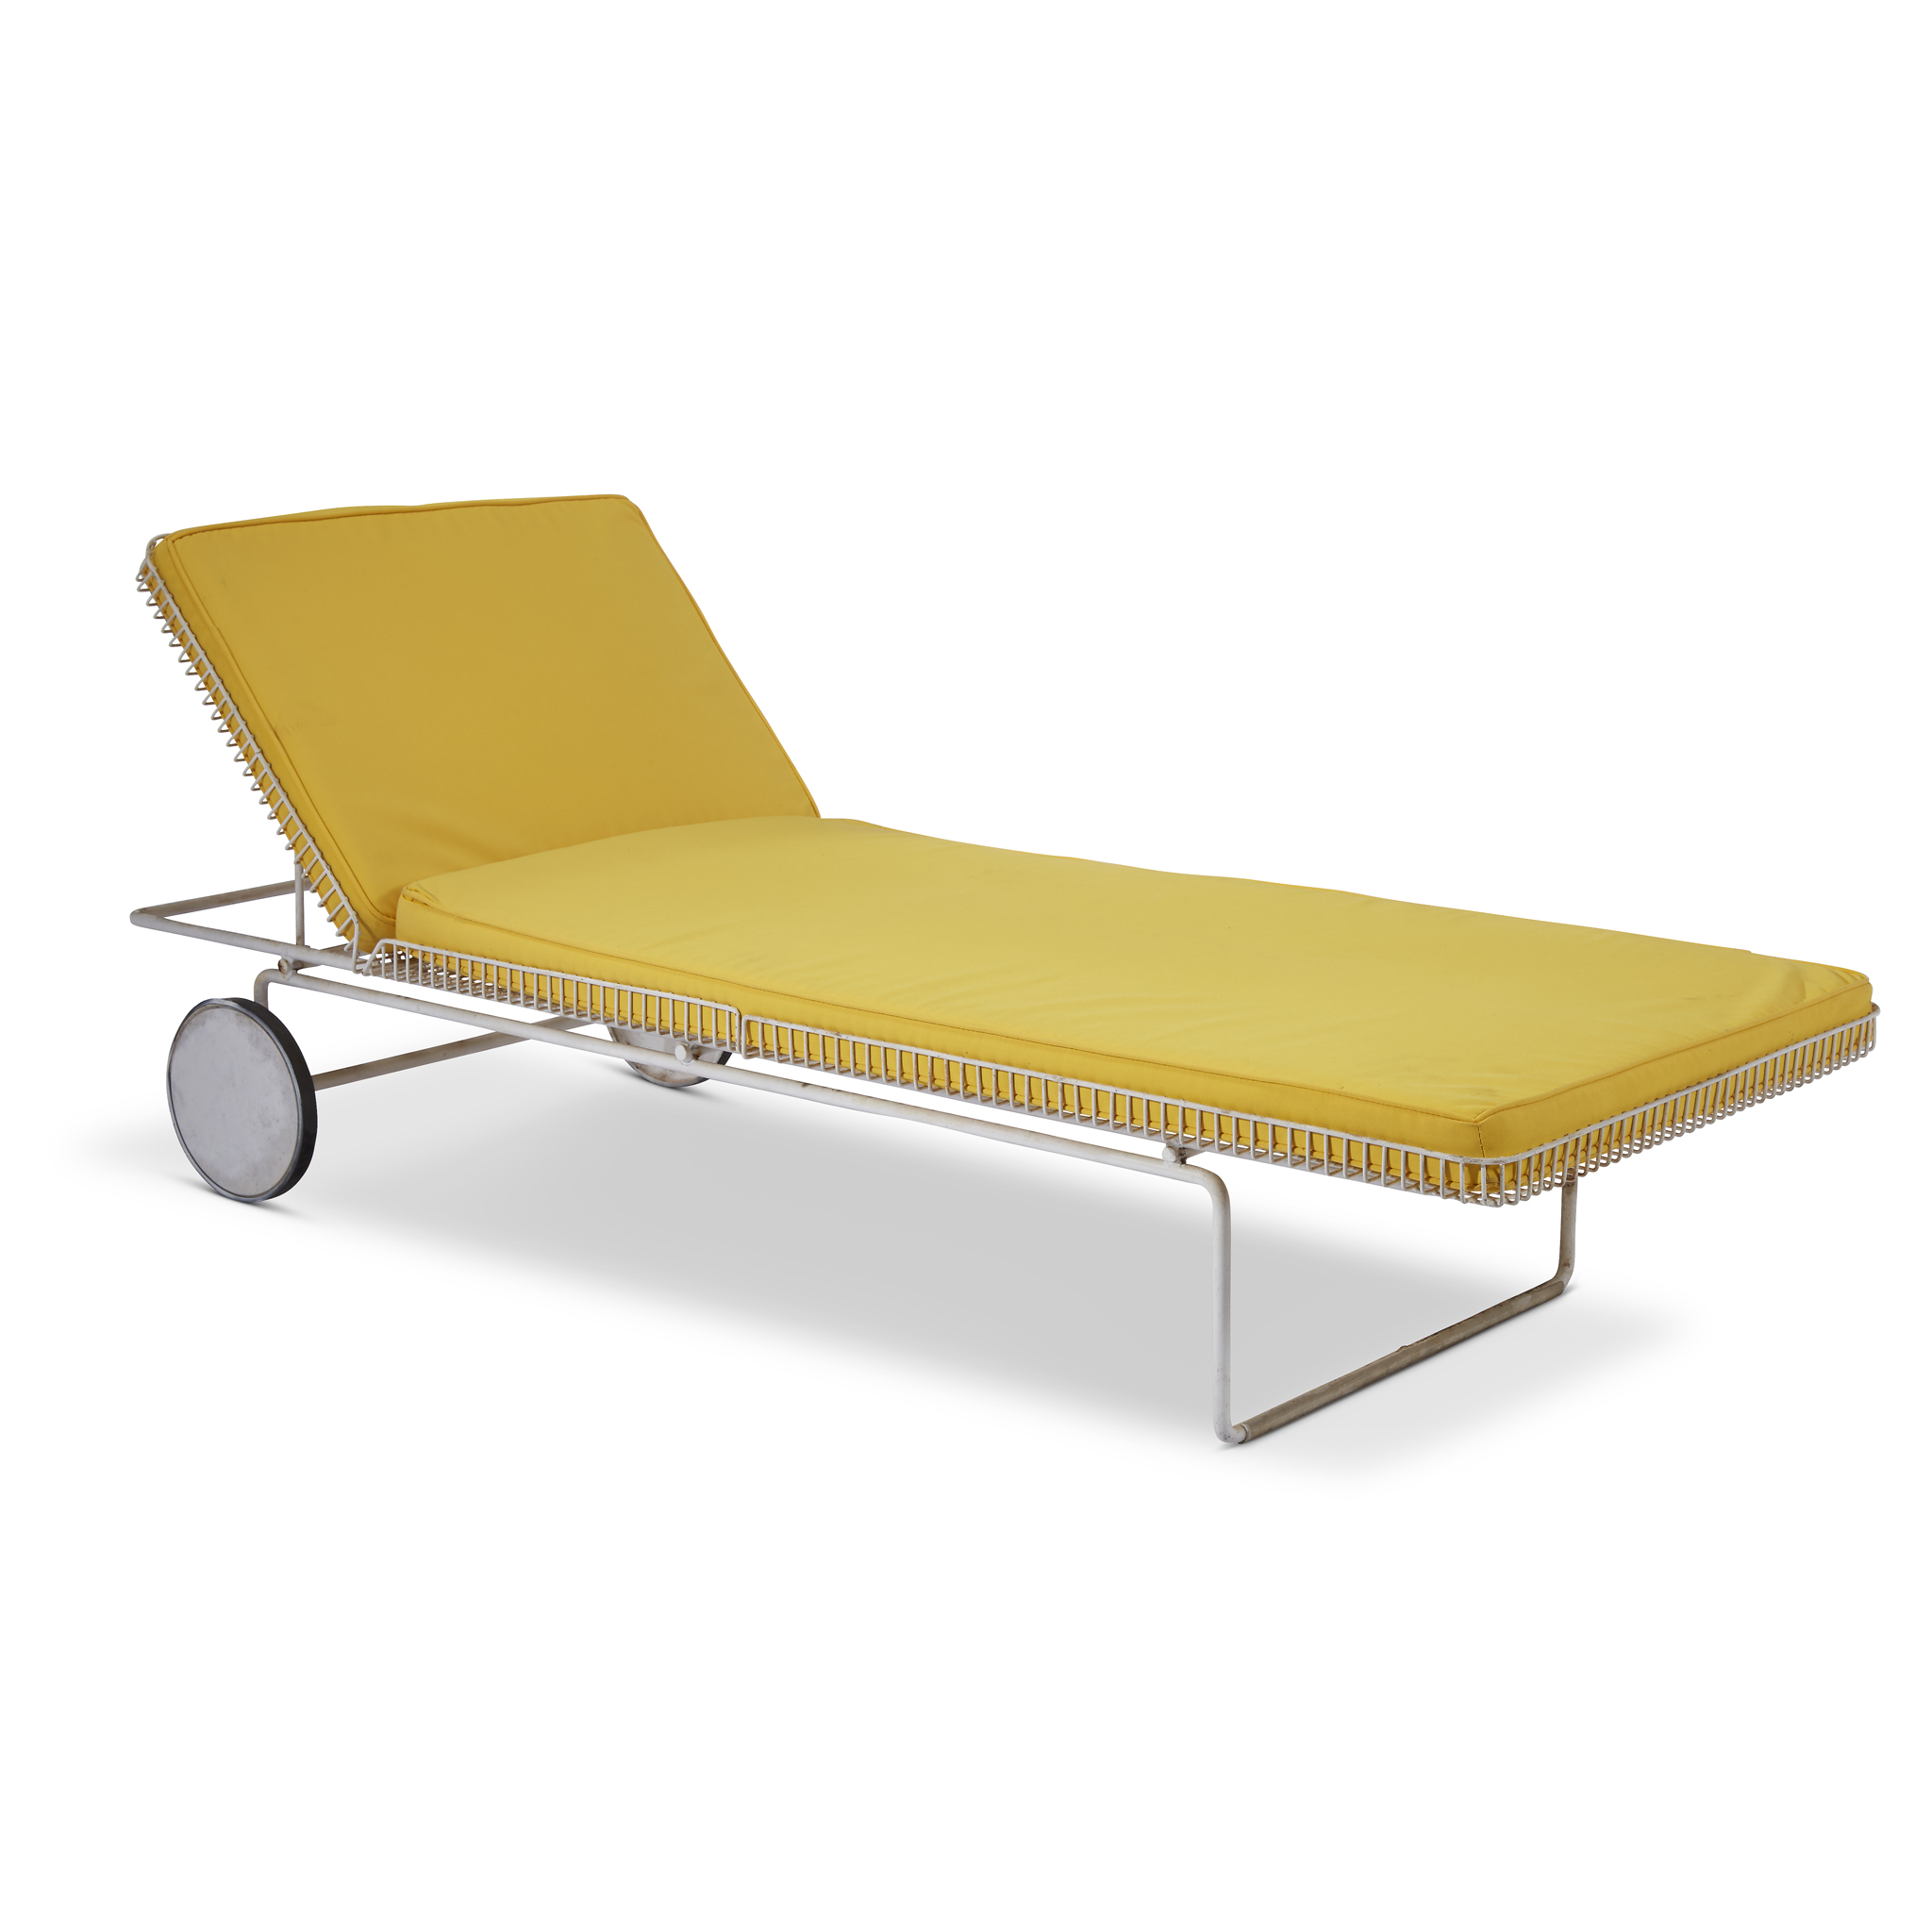 Freeman s to auction off midcentury modern furniture for for Knoll associates